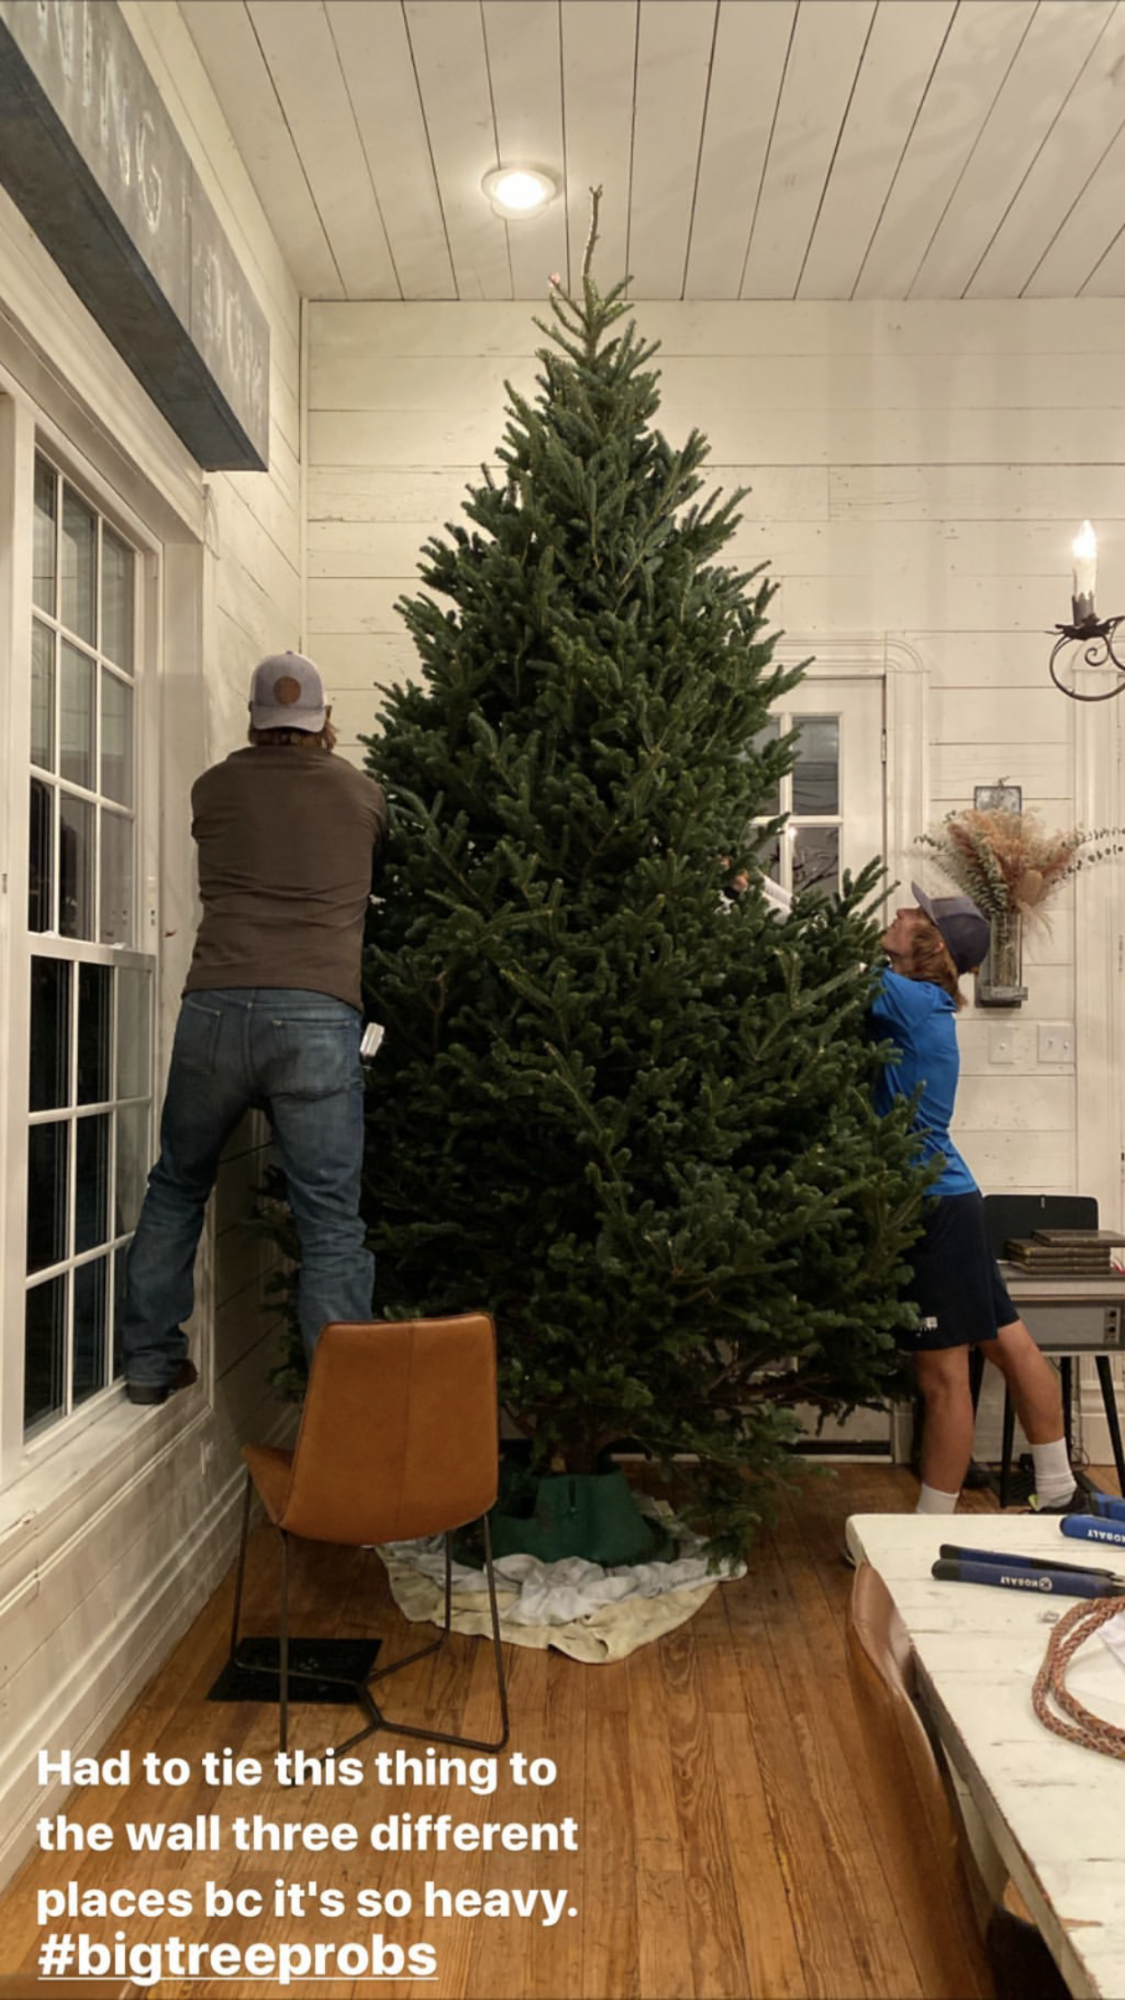 Chip Gaines Needed a John Deere Tractor to Lift Giant Christmas Tree on Truck